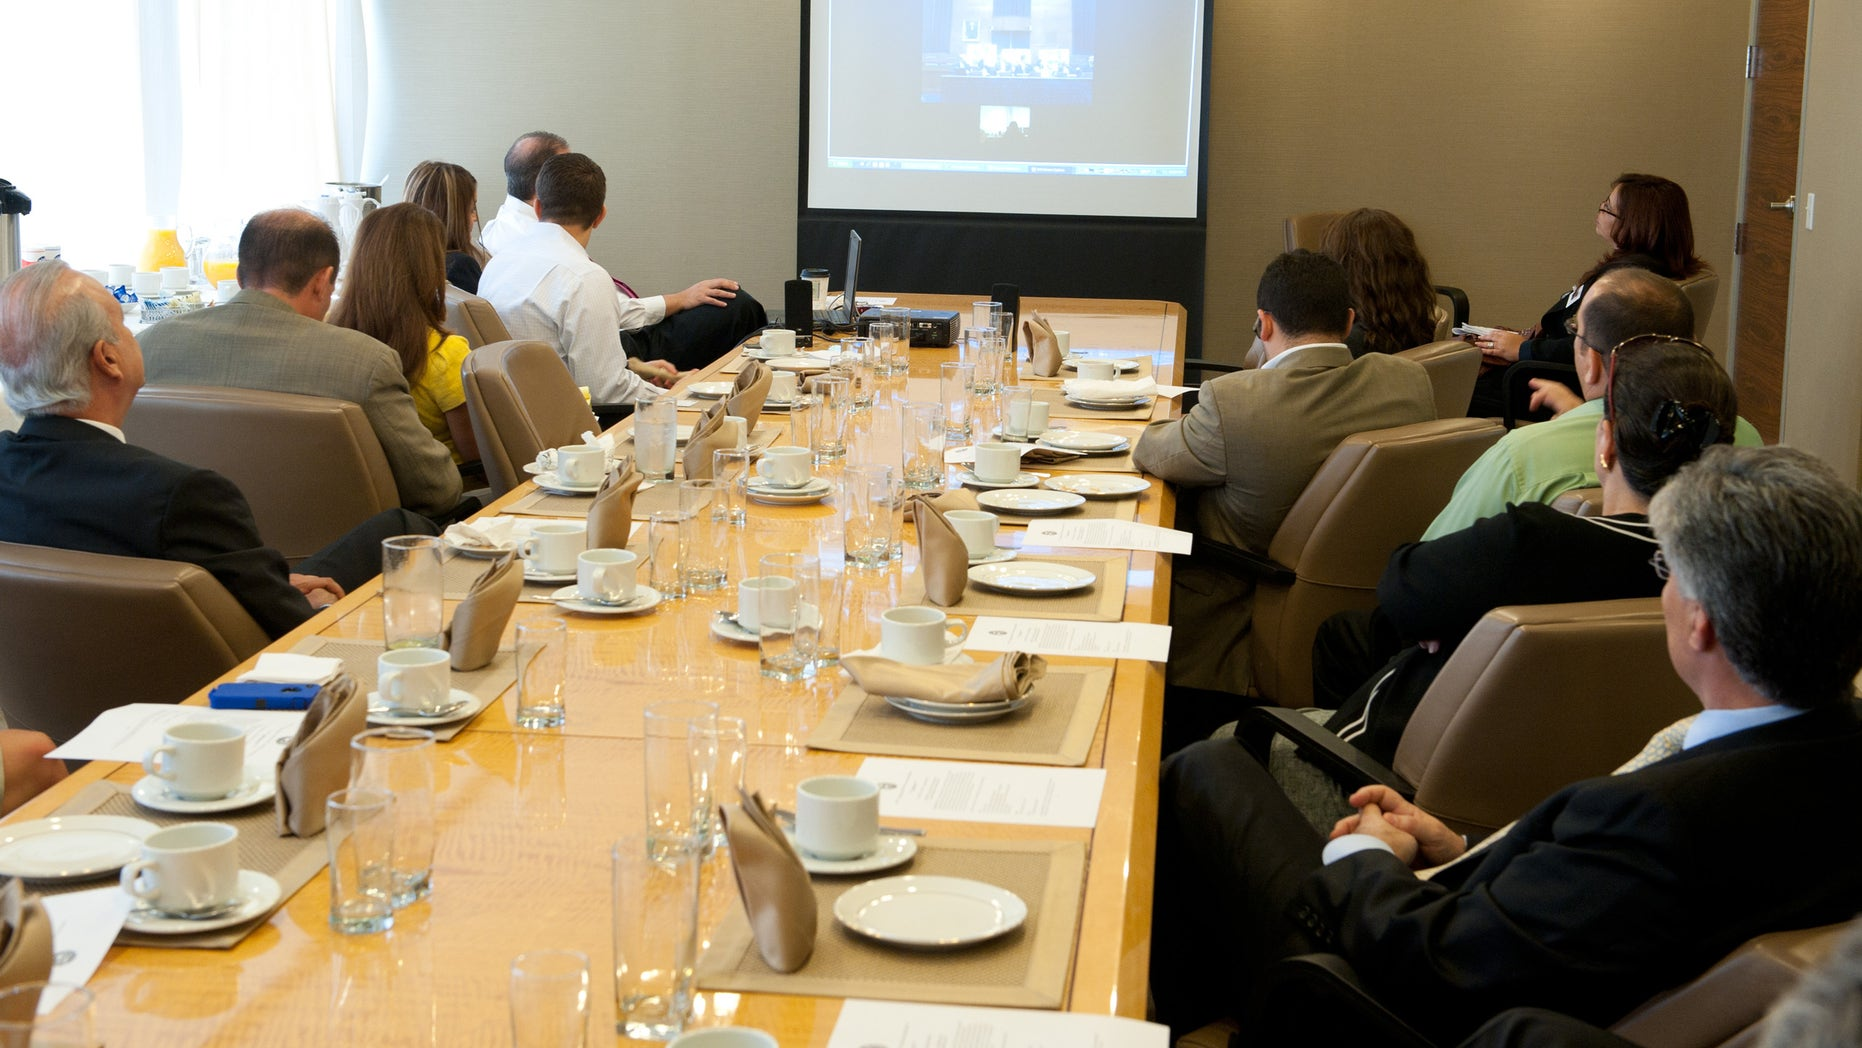 Members of the Cuban American Bar Association in Miami listen via Skype to a briefing in Washington D.C. on human rights violations in Cuba.